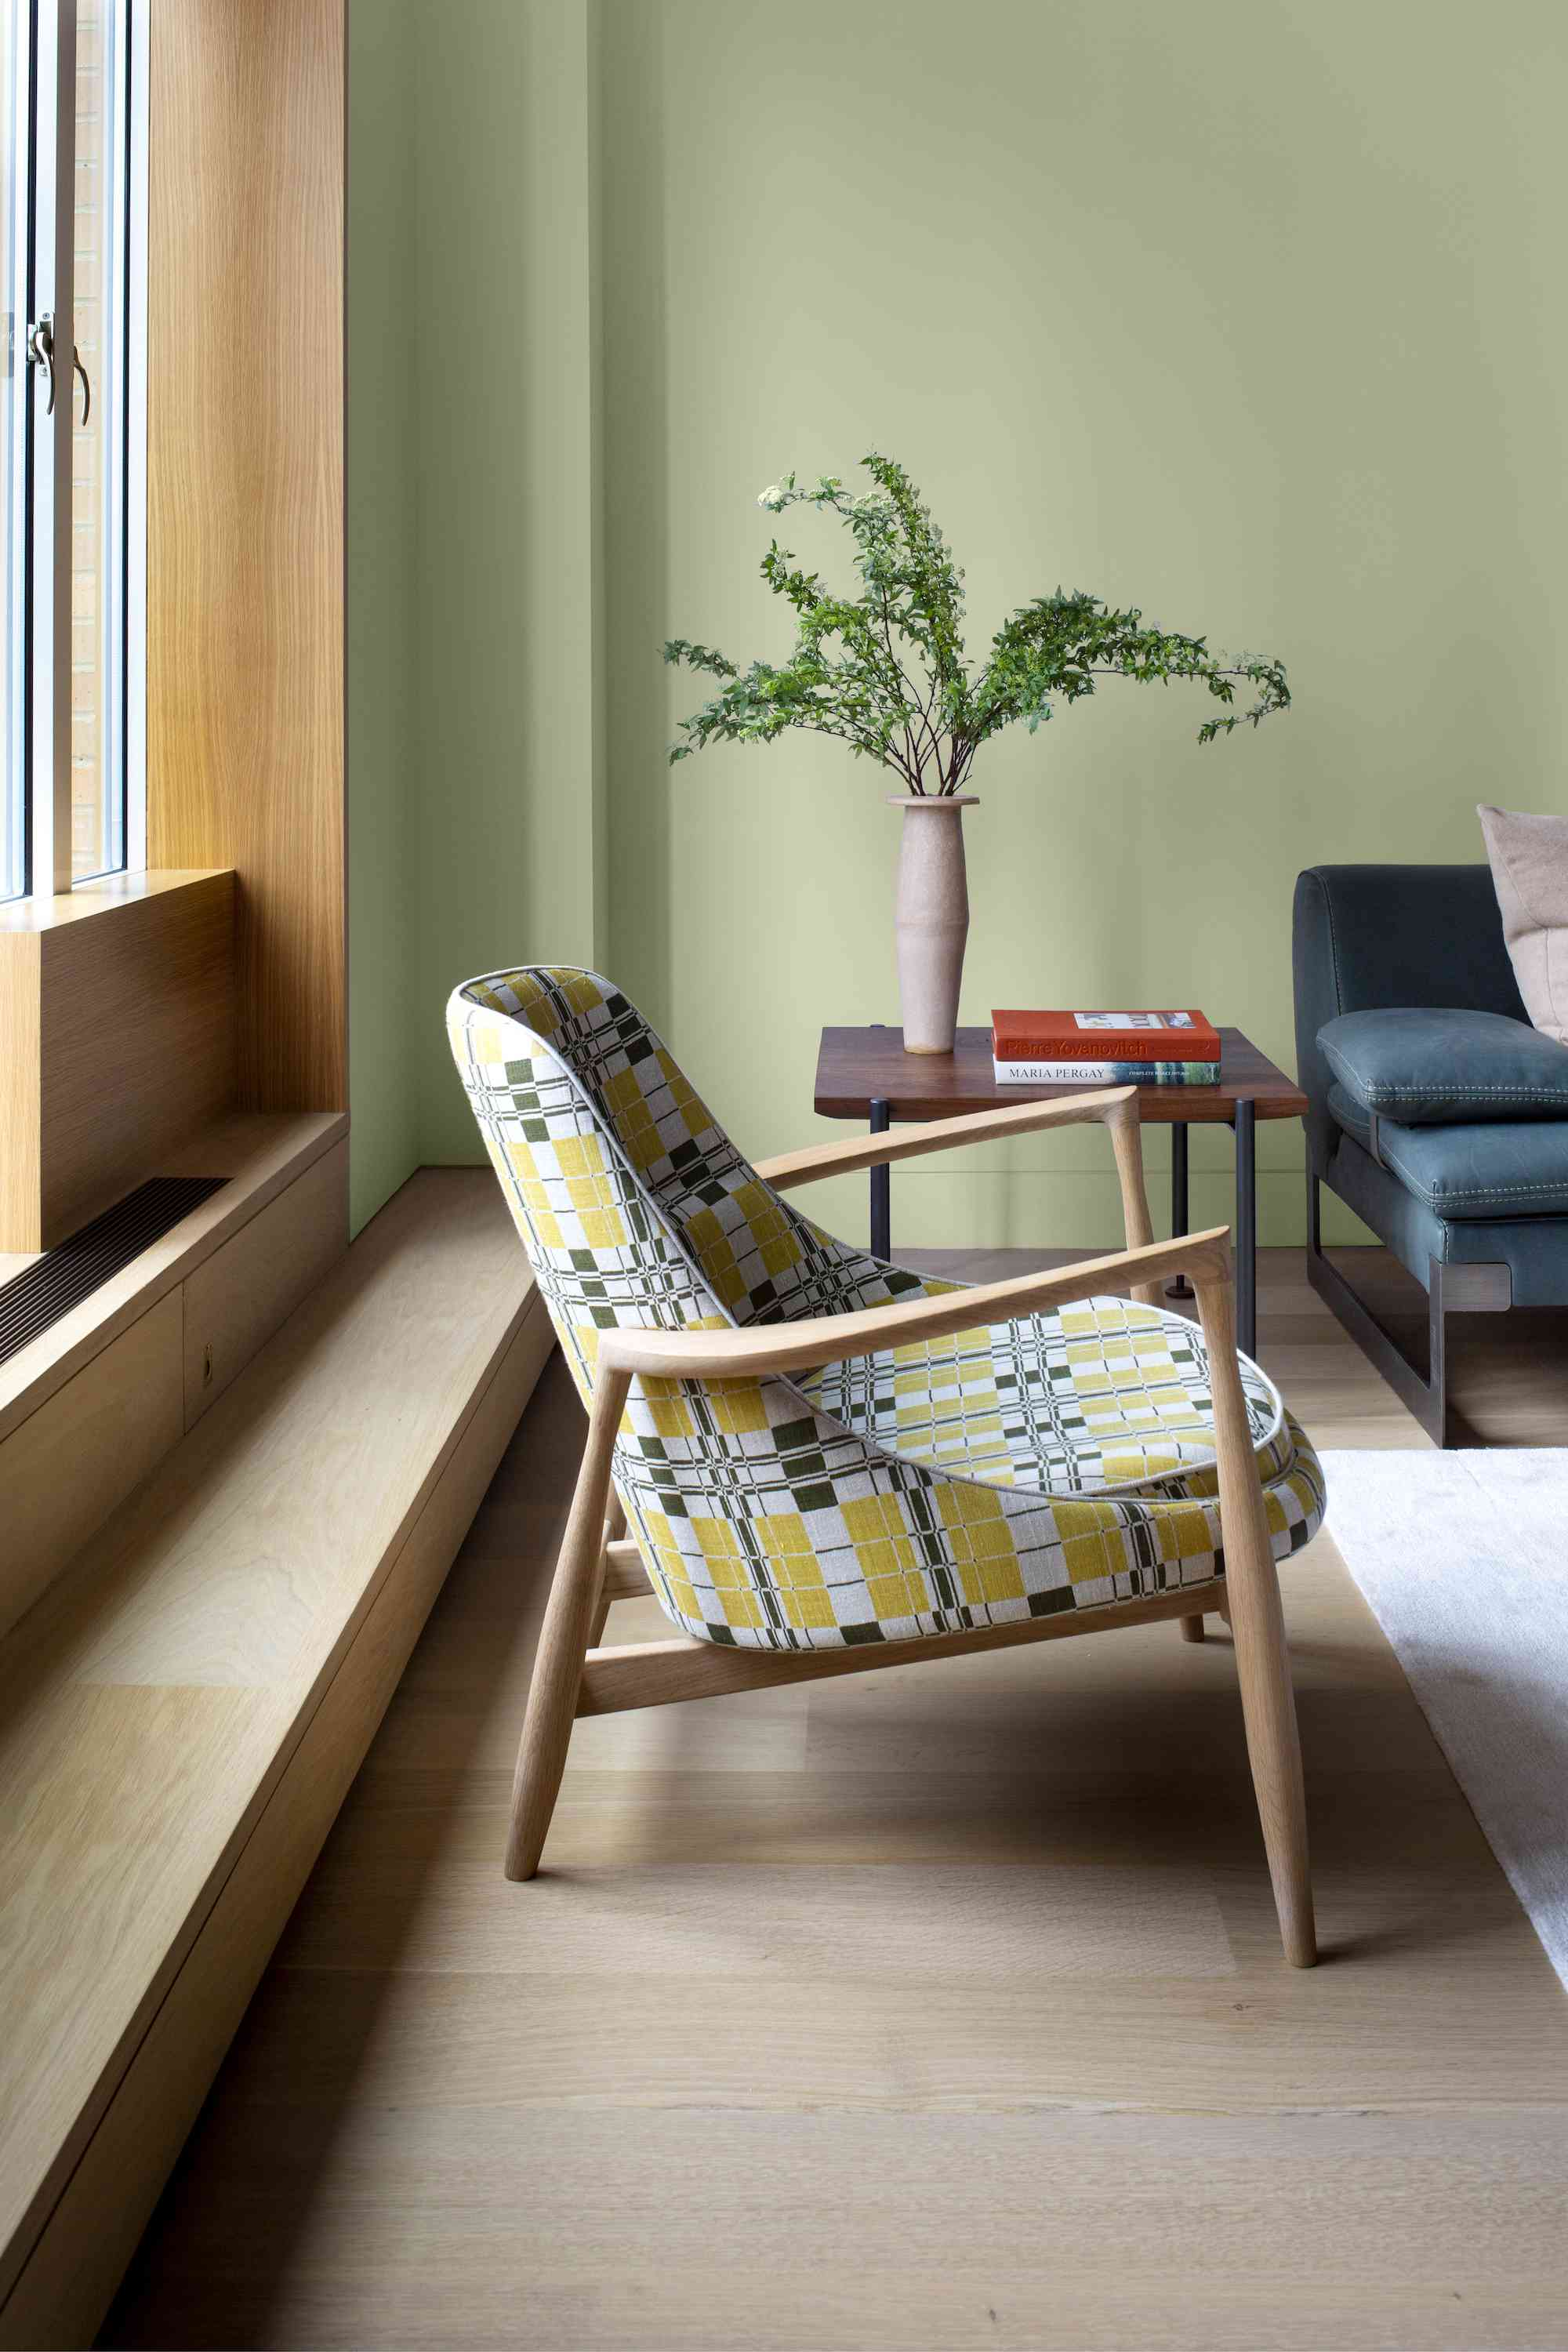 Funky patterned chair in living room painted Olive Sprig.